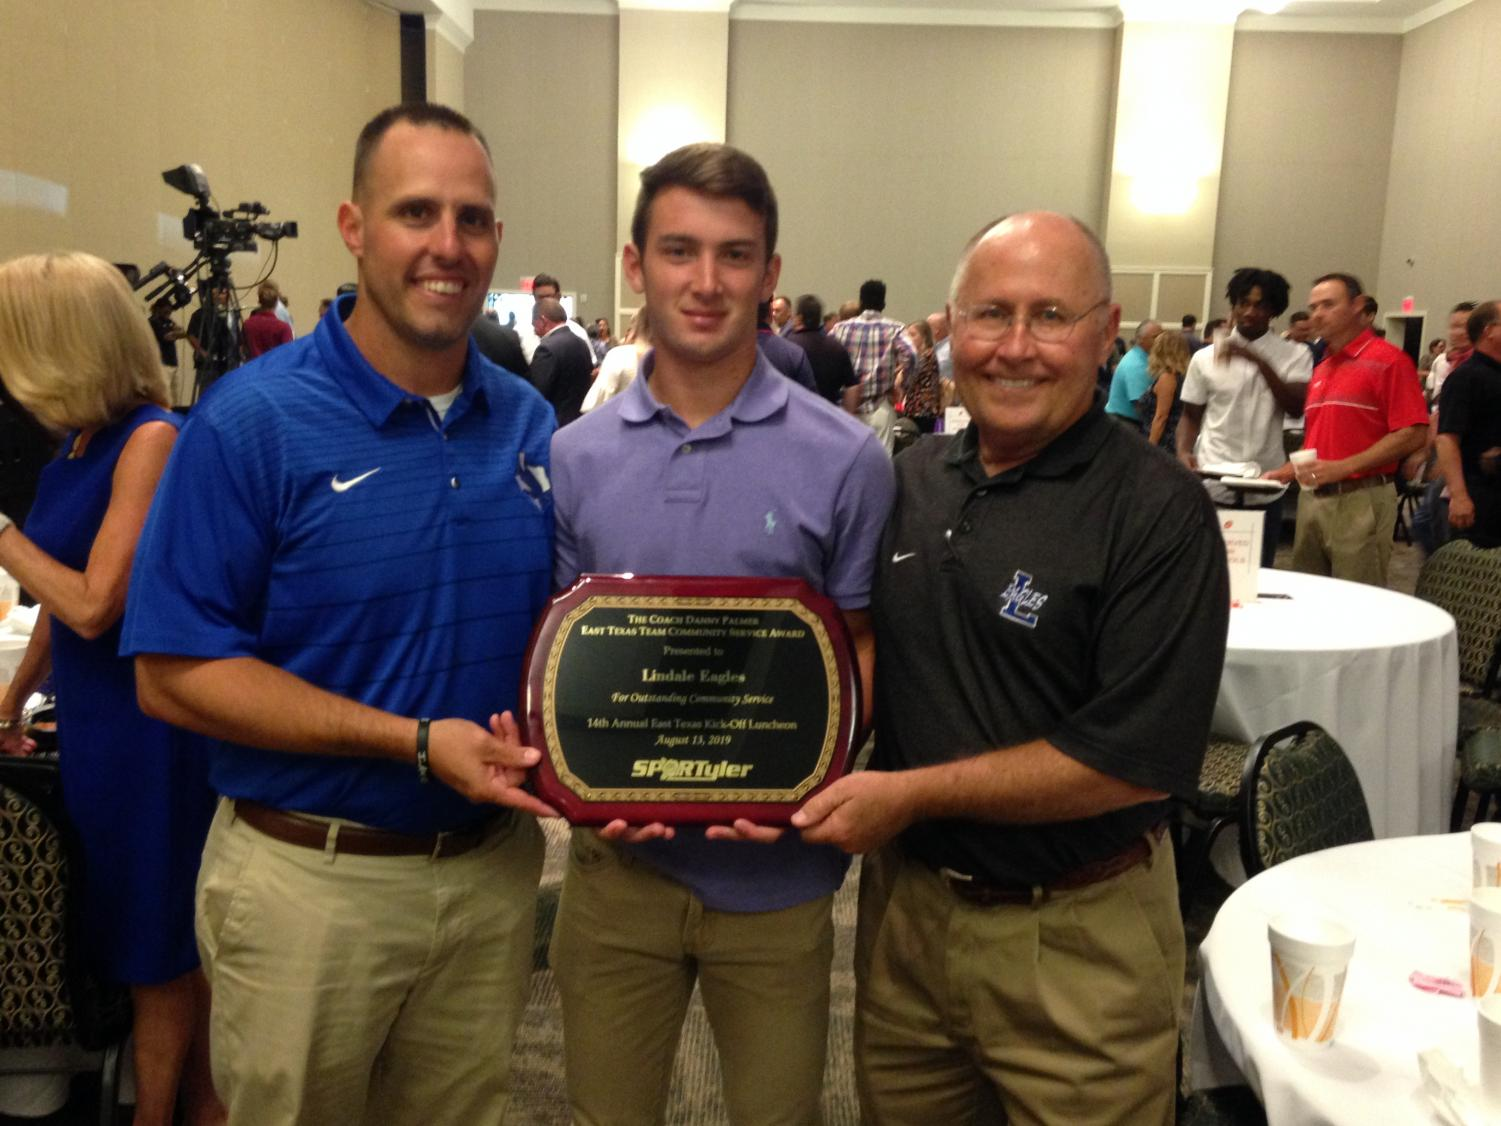 Coach Cochran, senior Conner Boyette, and AD Mike Maddox accept the community service award on behalf of the football team.